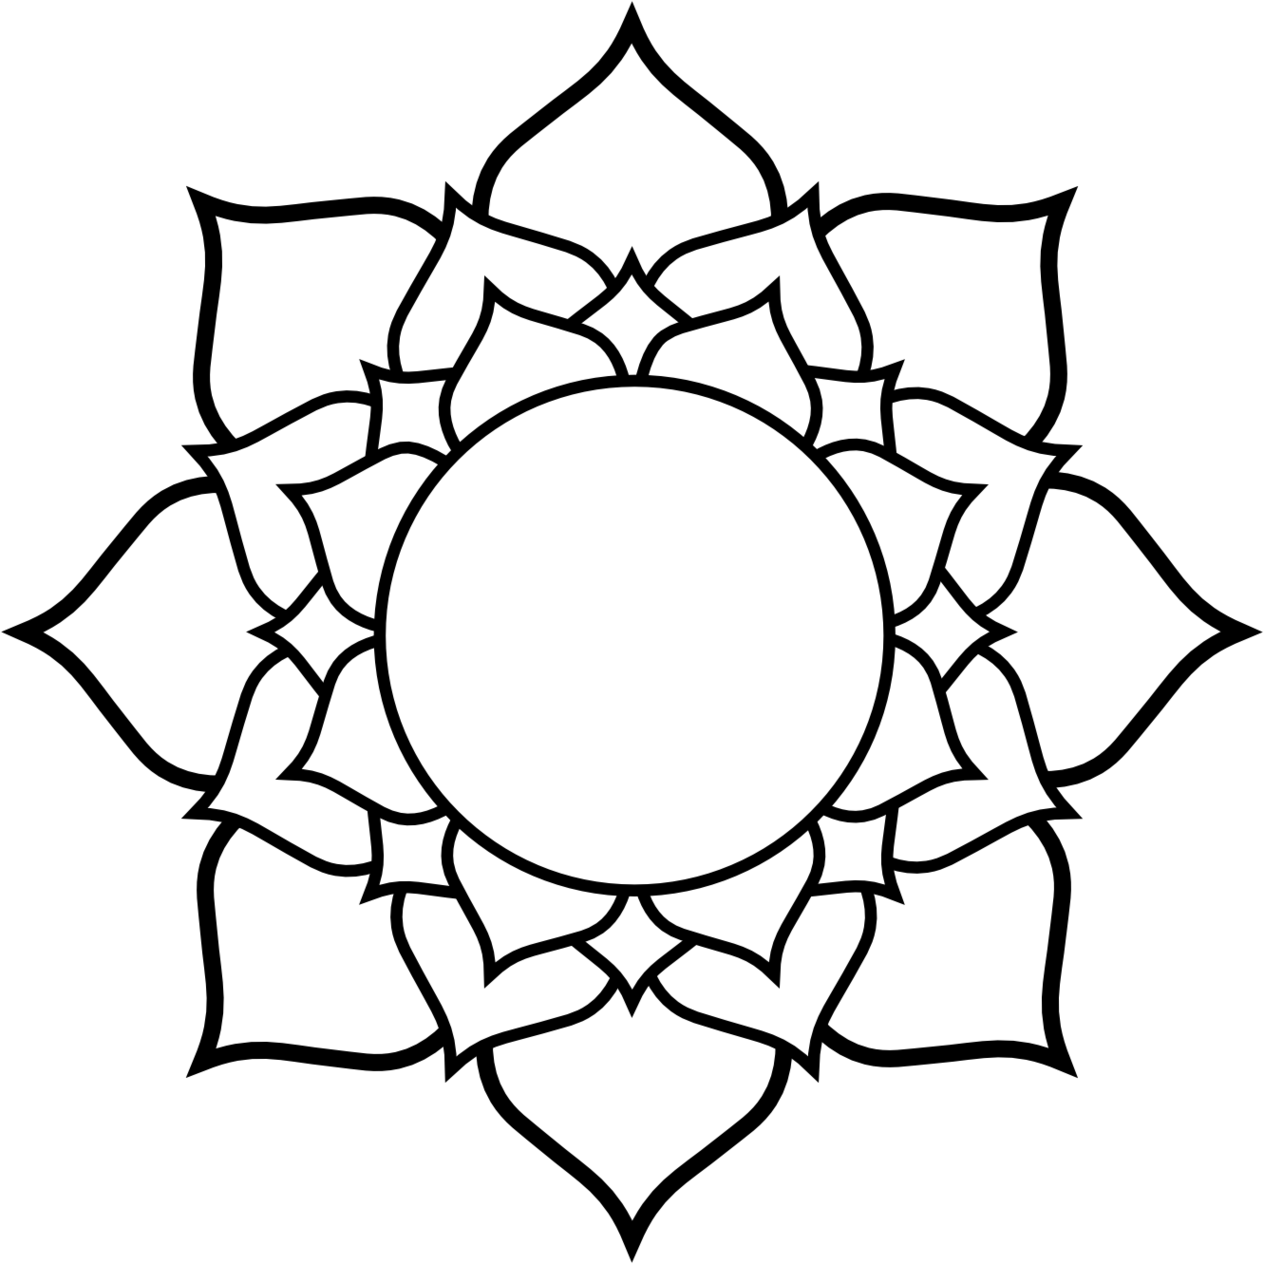 picture royalty free download Simple Lotus Drawing at GetDrawings